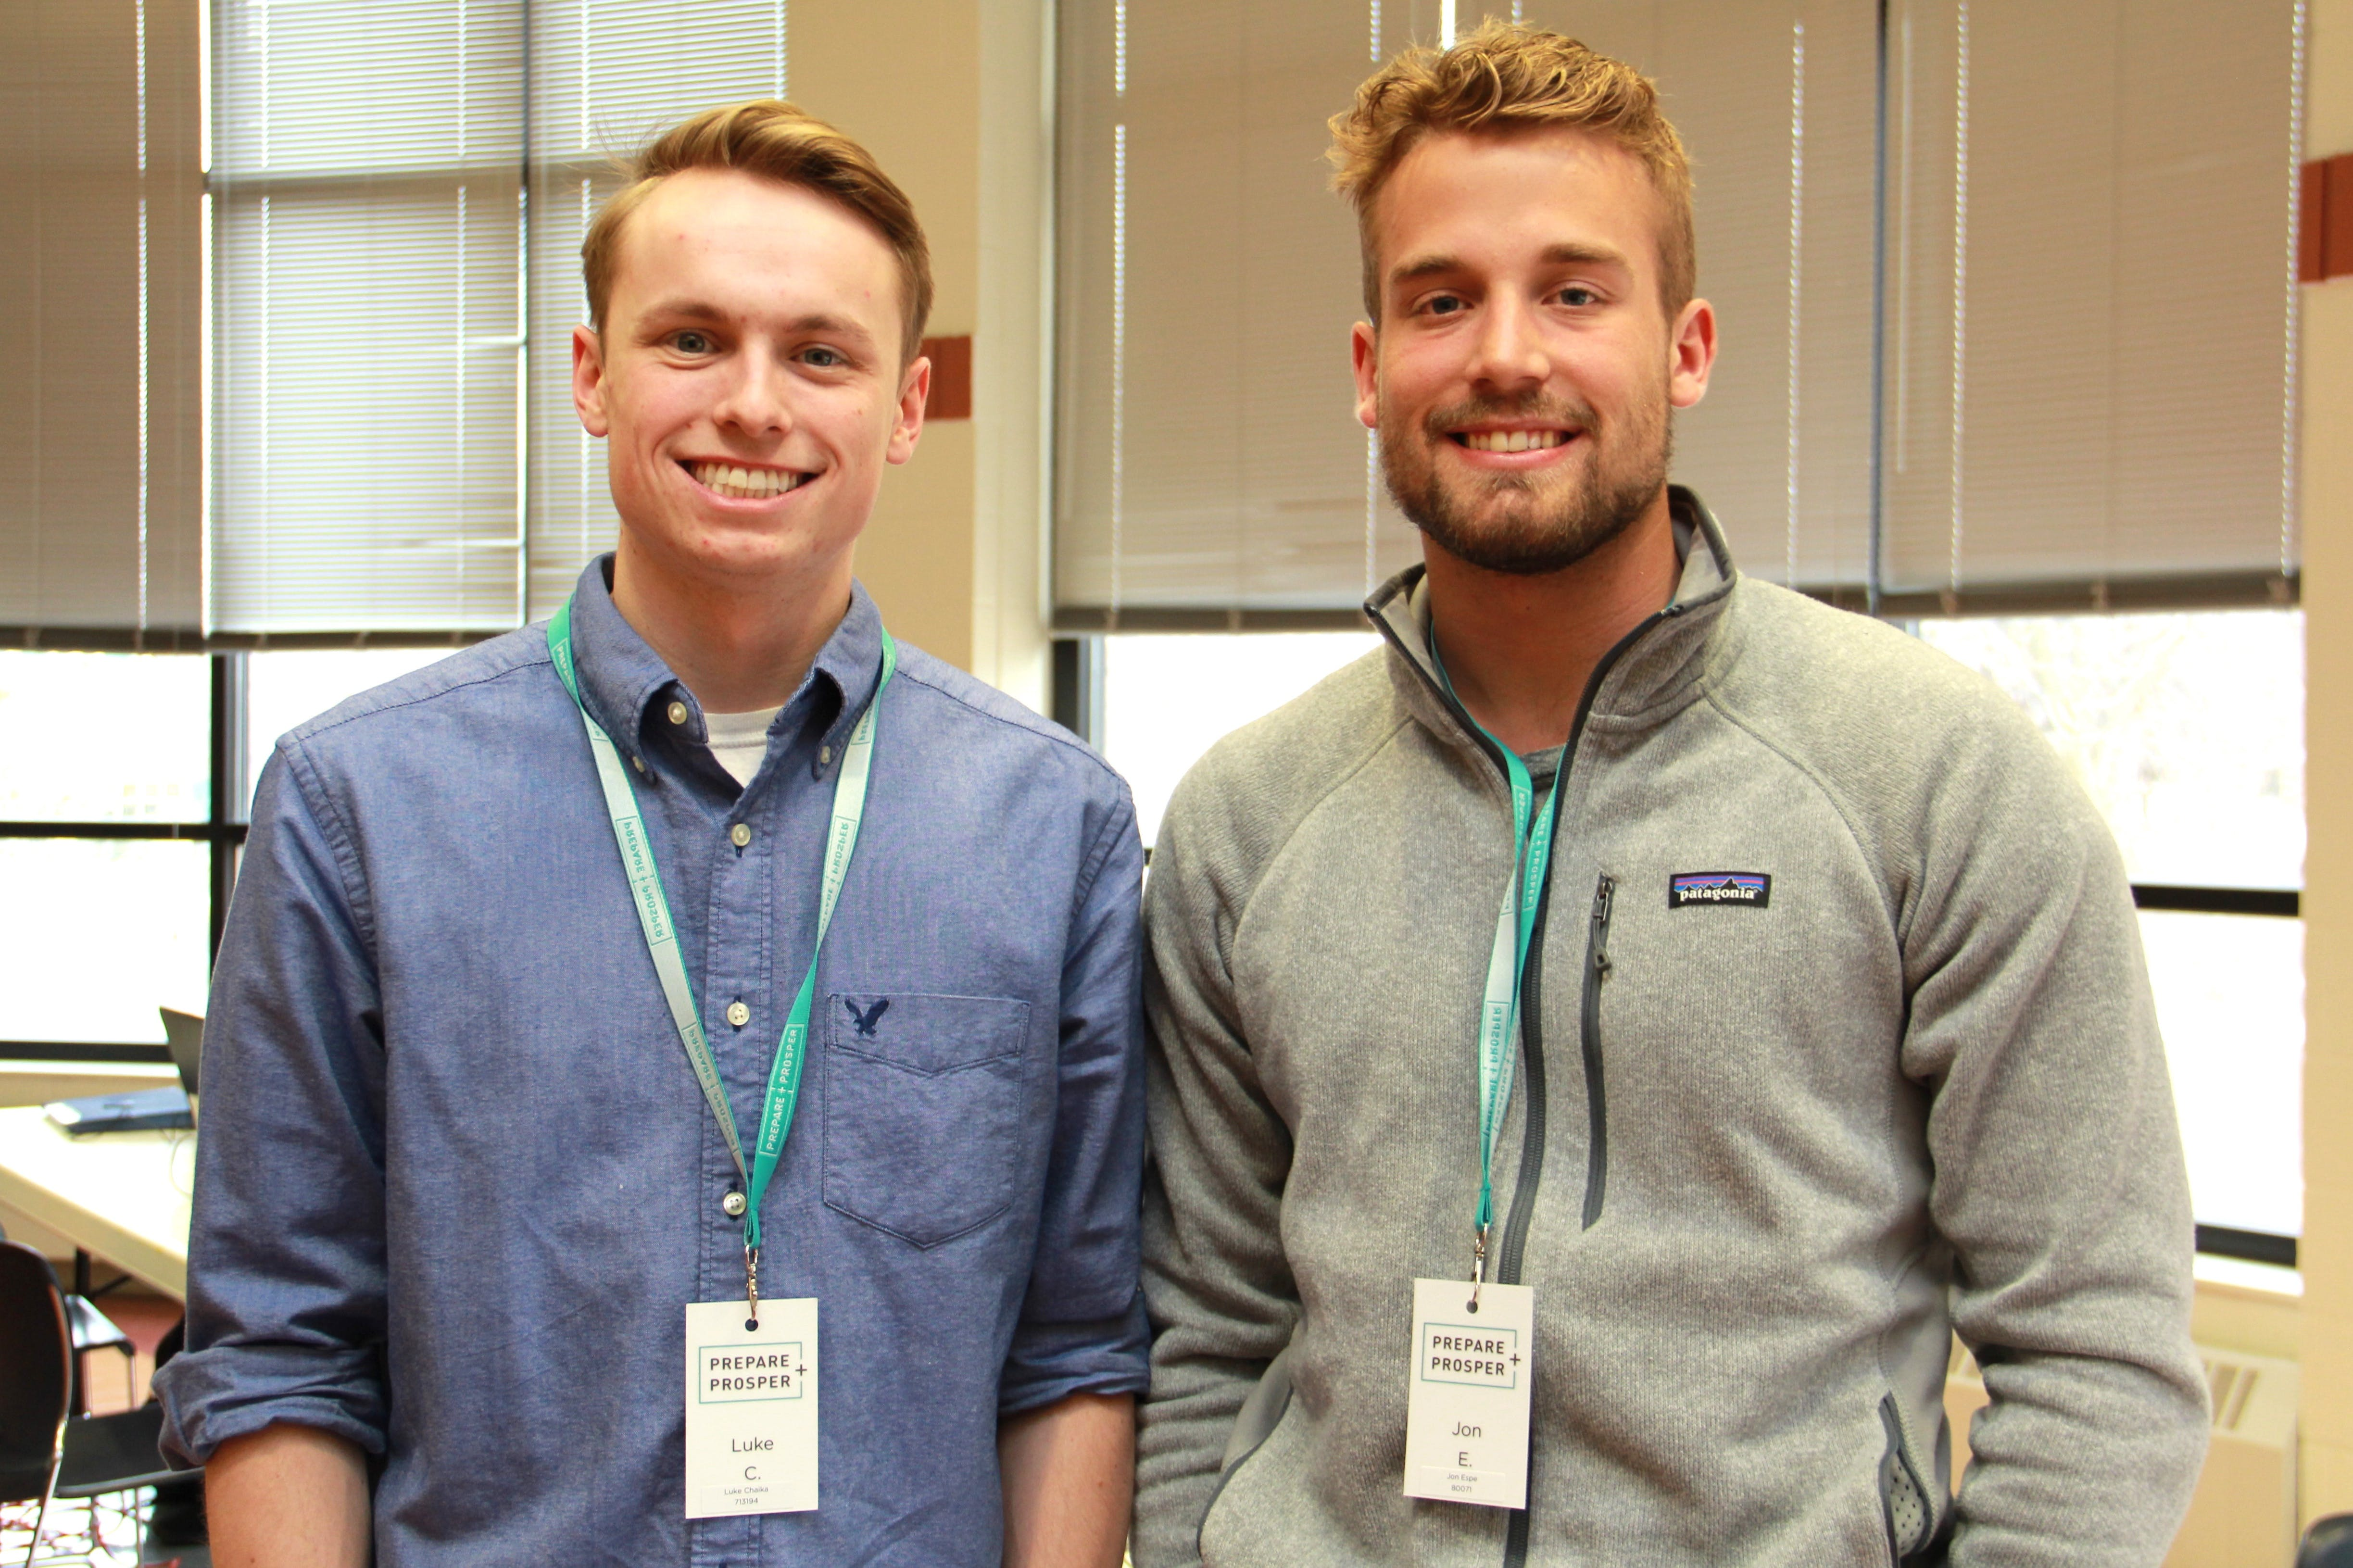 Business Students Lend their Expertise to Help Others During Tax Season